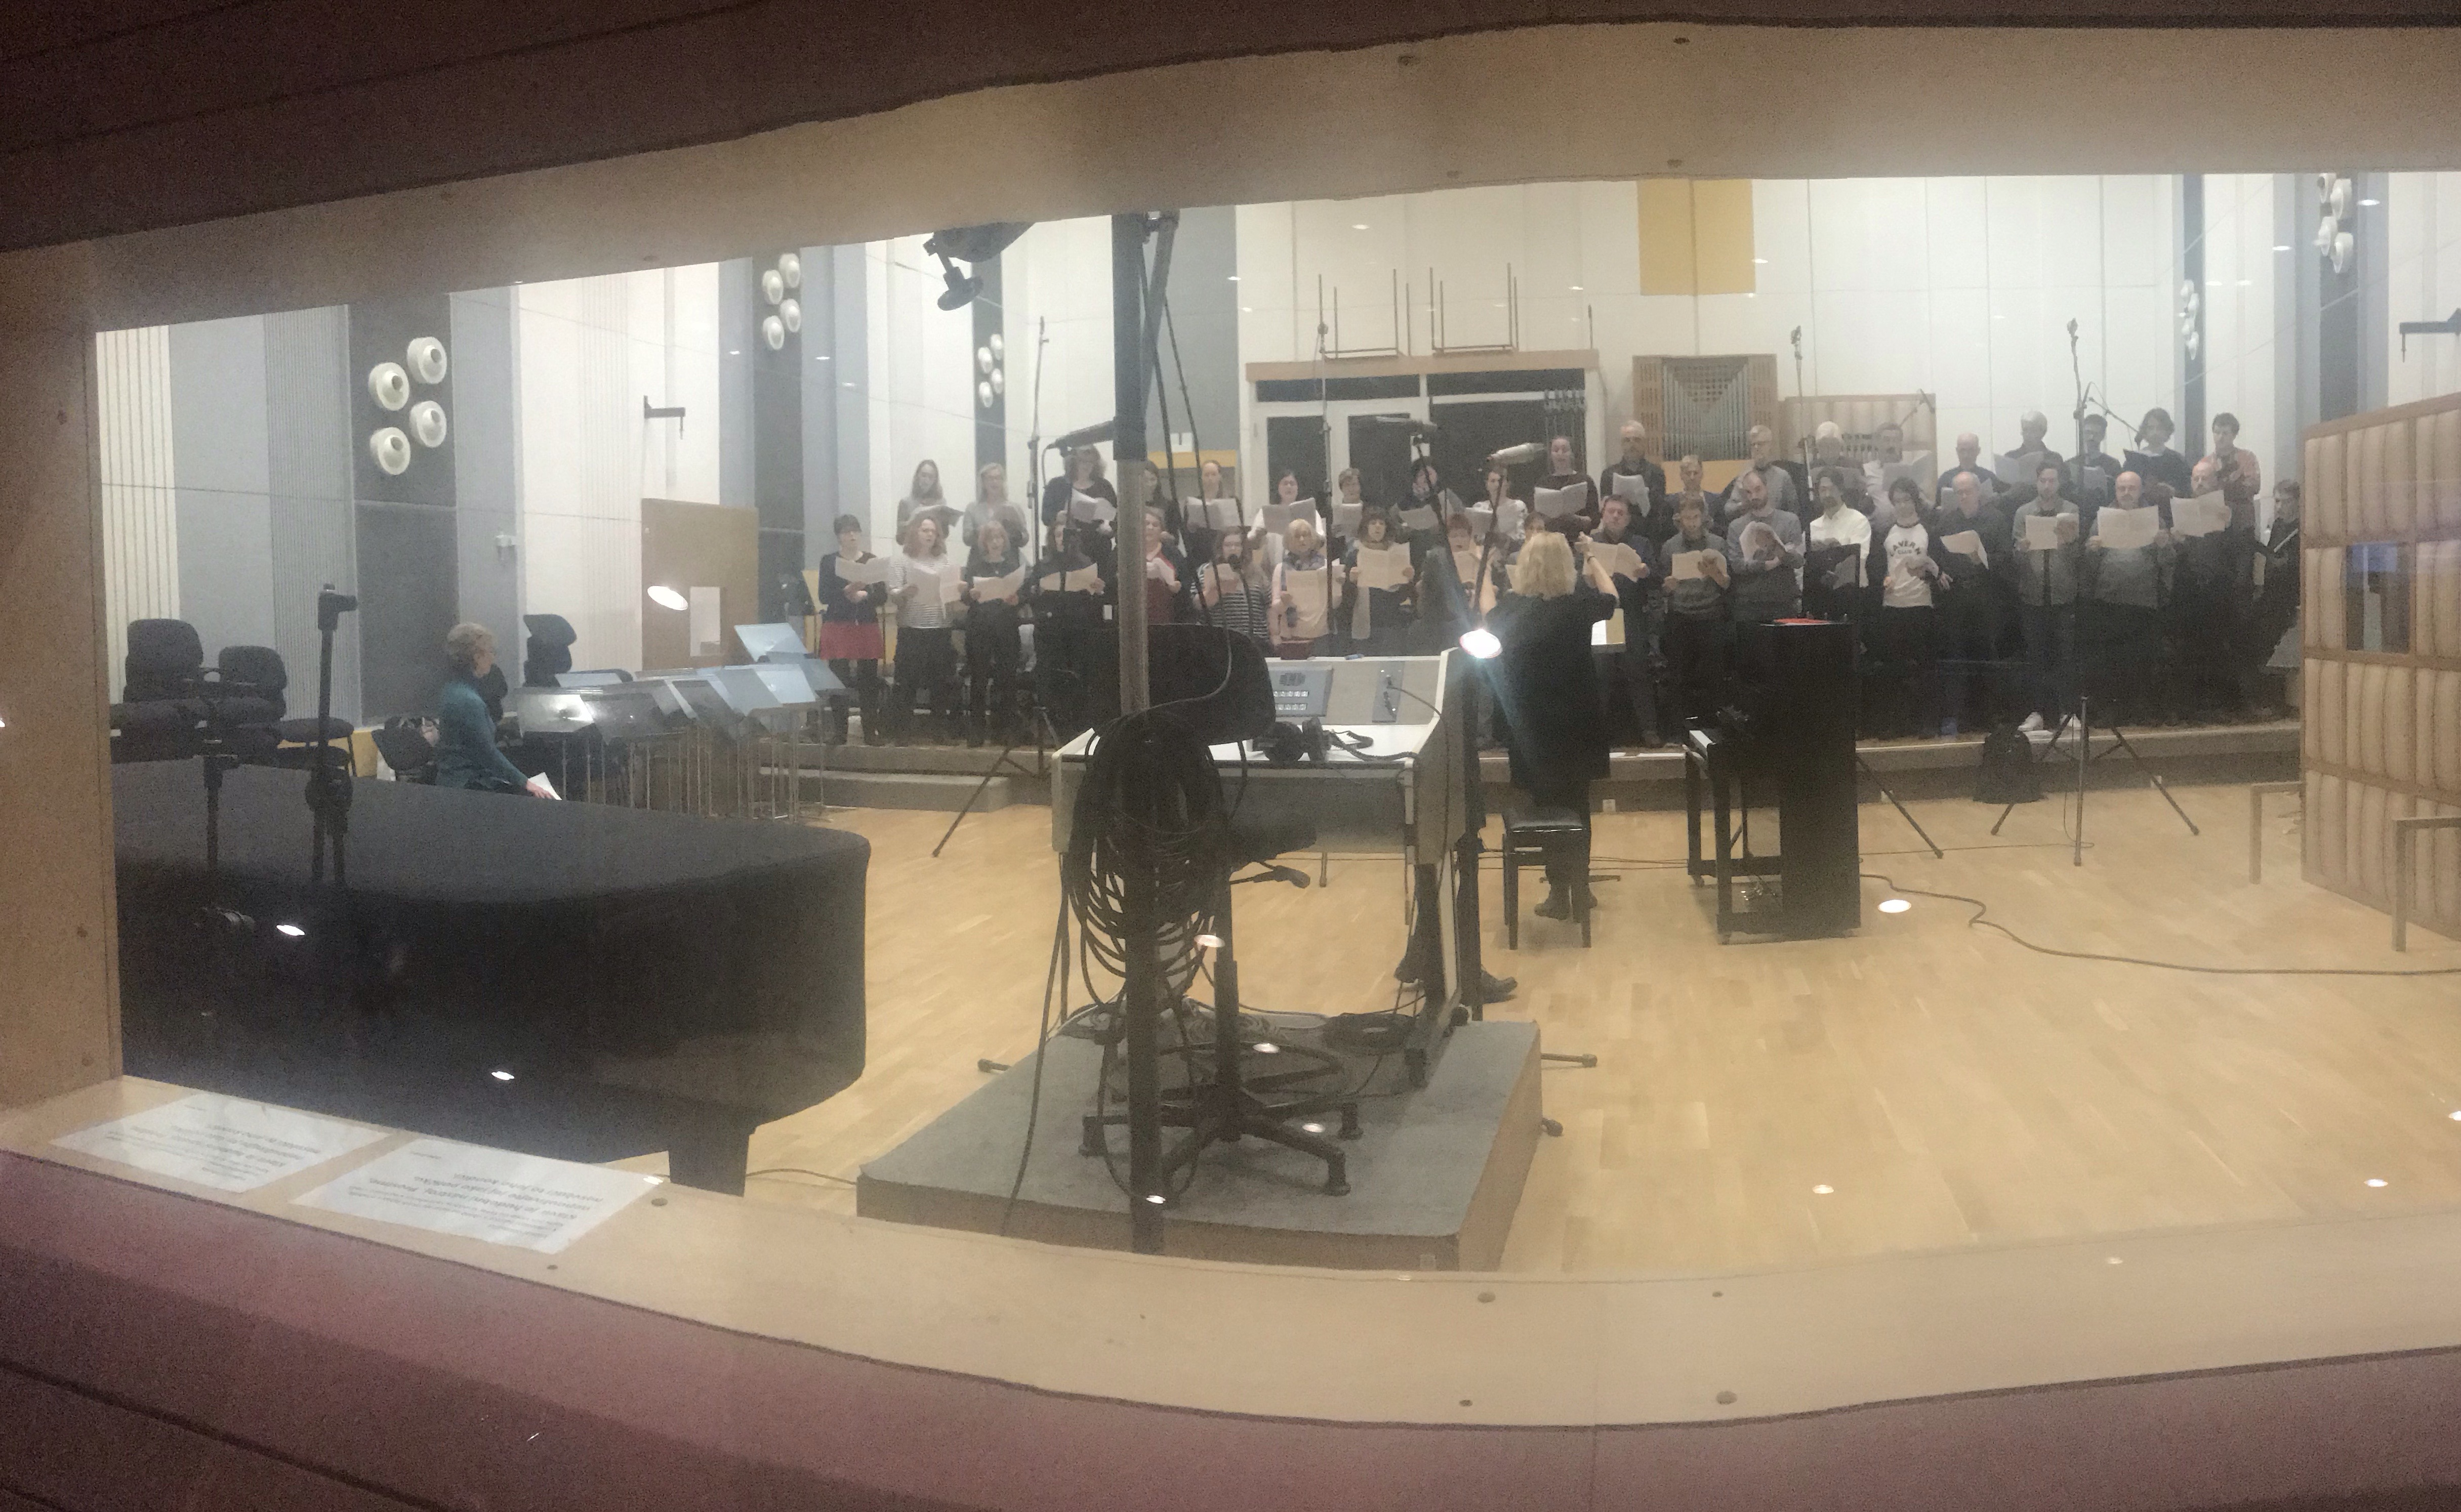 A view of the choir and Theresa from engineer's booth